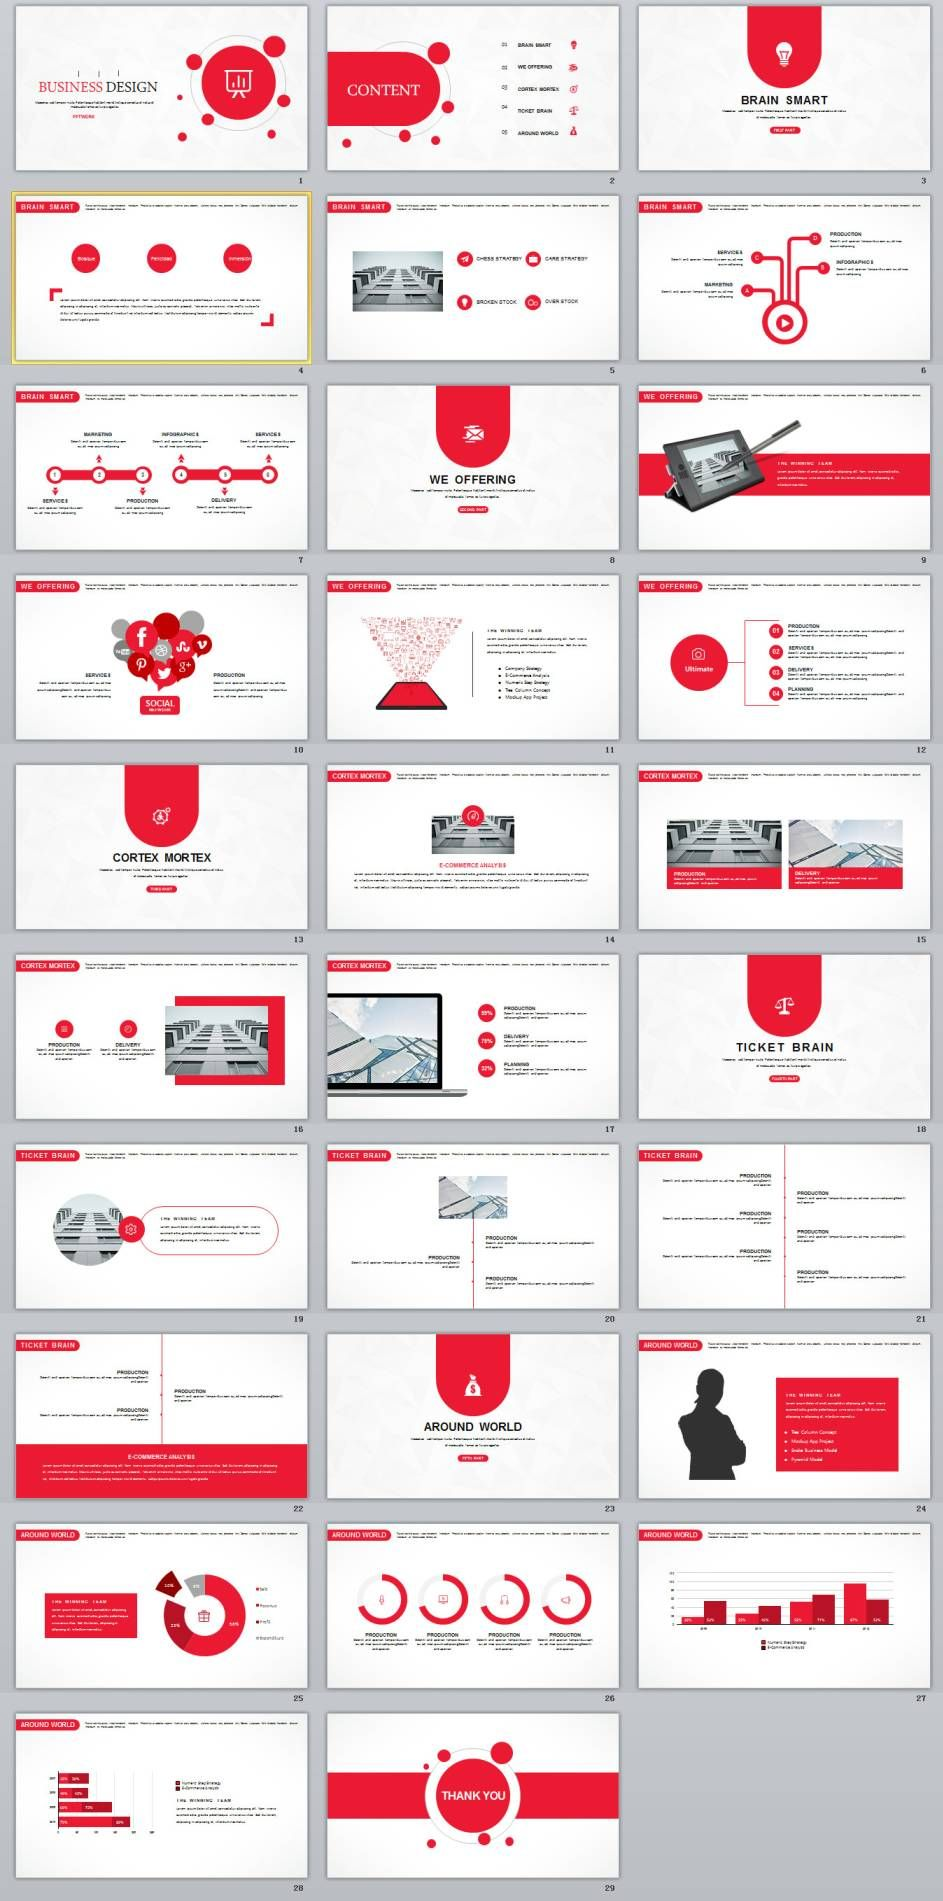 29 red creative business design powerpoint template business